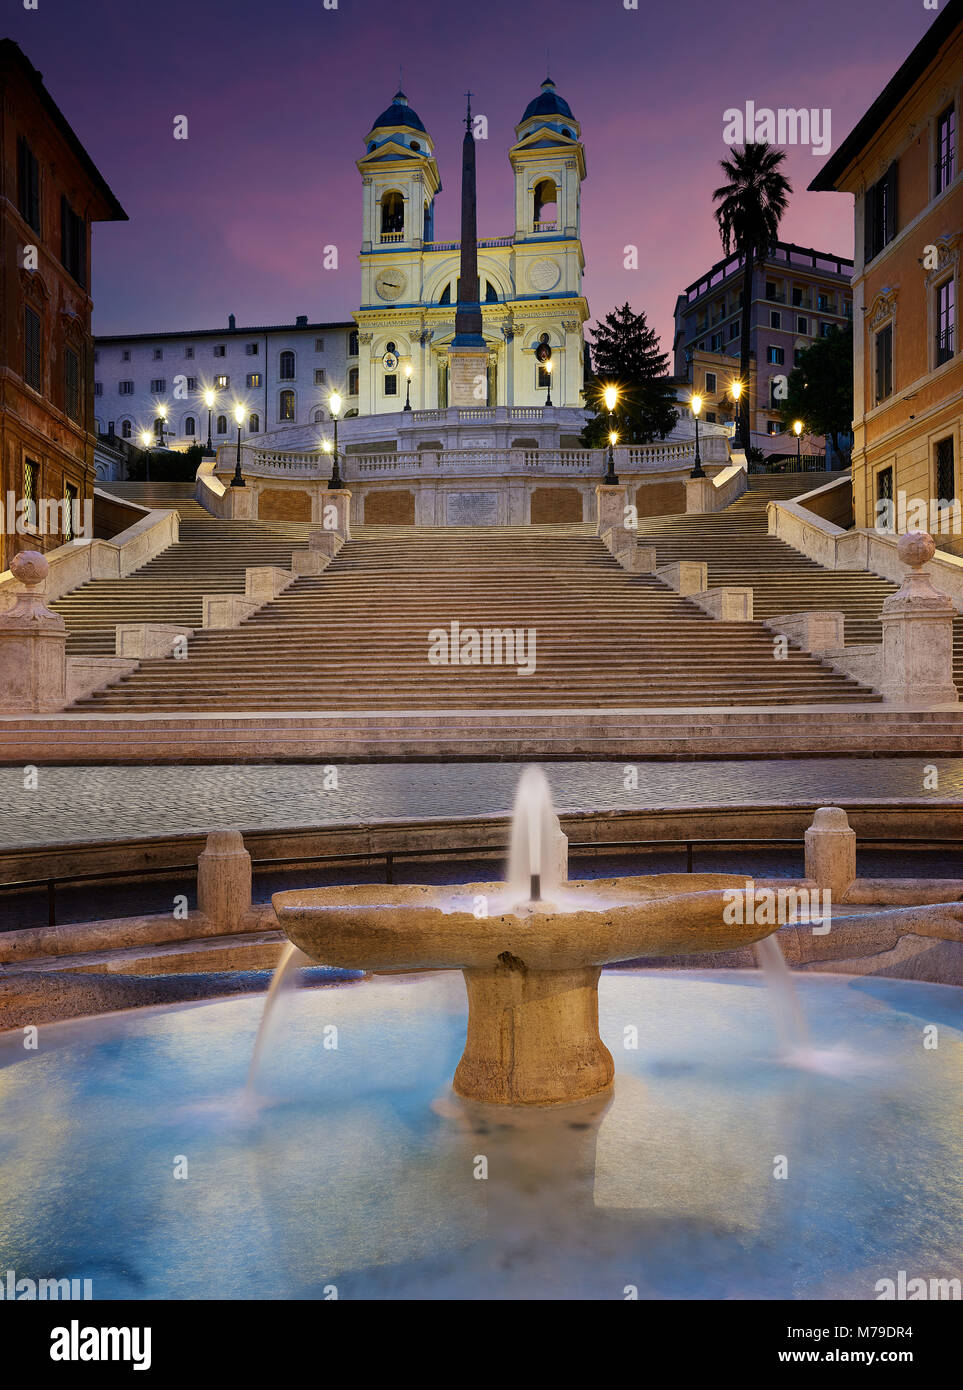 Rome, Italy - October 13, 2016: Spanish Steps at sunrise in Rome, Italy - Stock Image